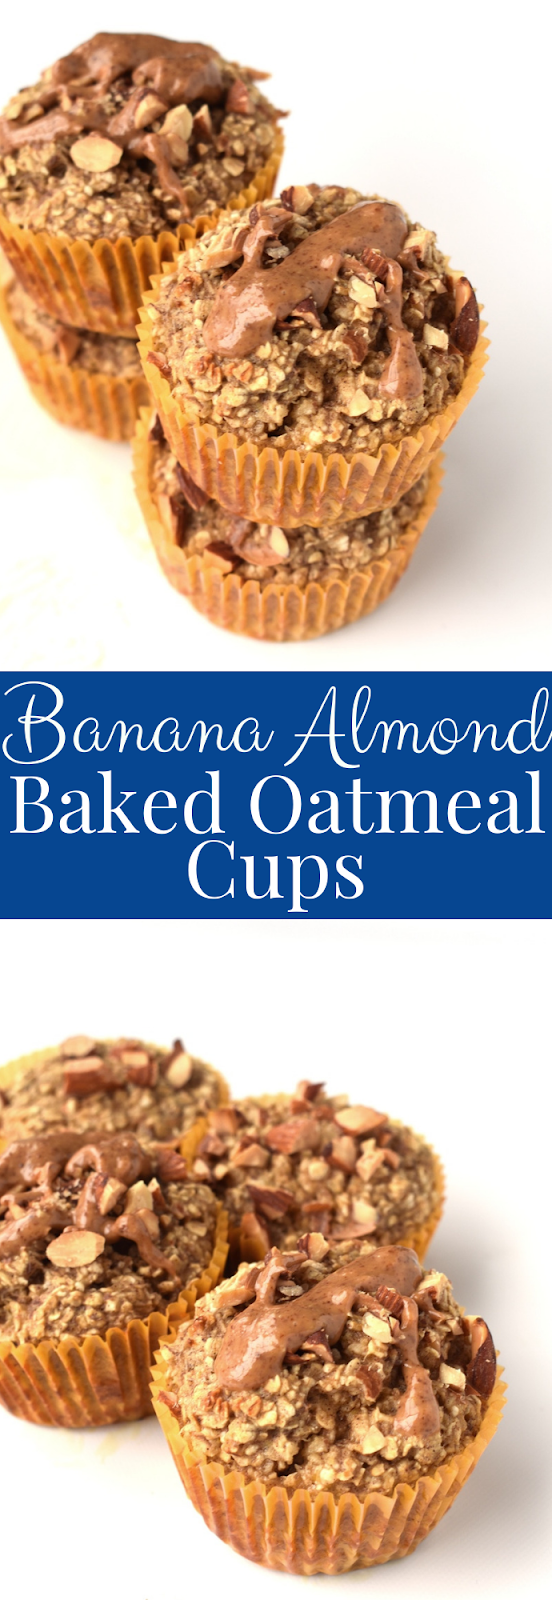 Banana Almond Baked Oatmeal Cups recipe